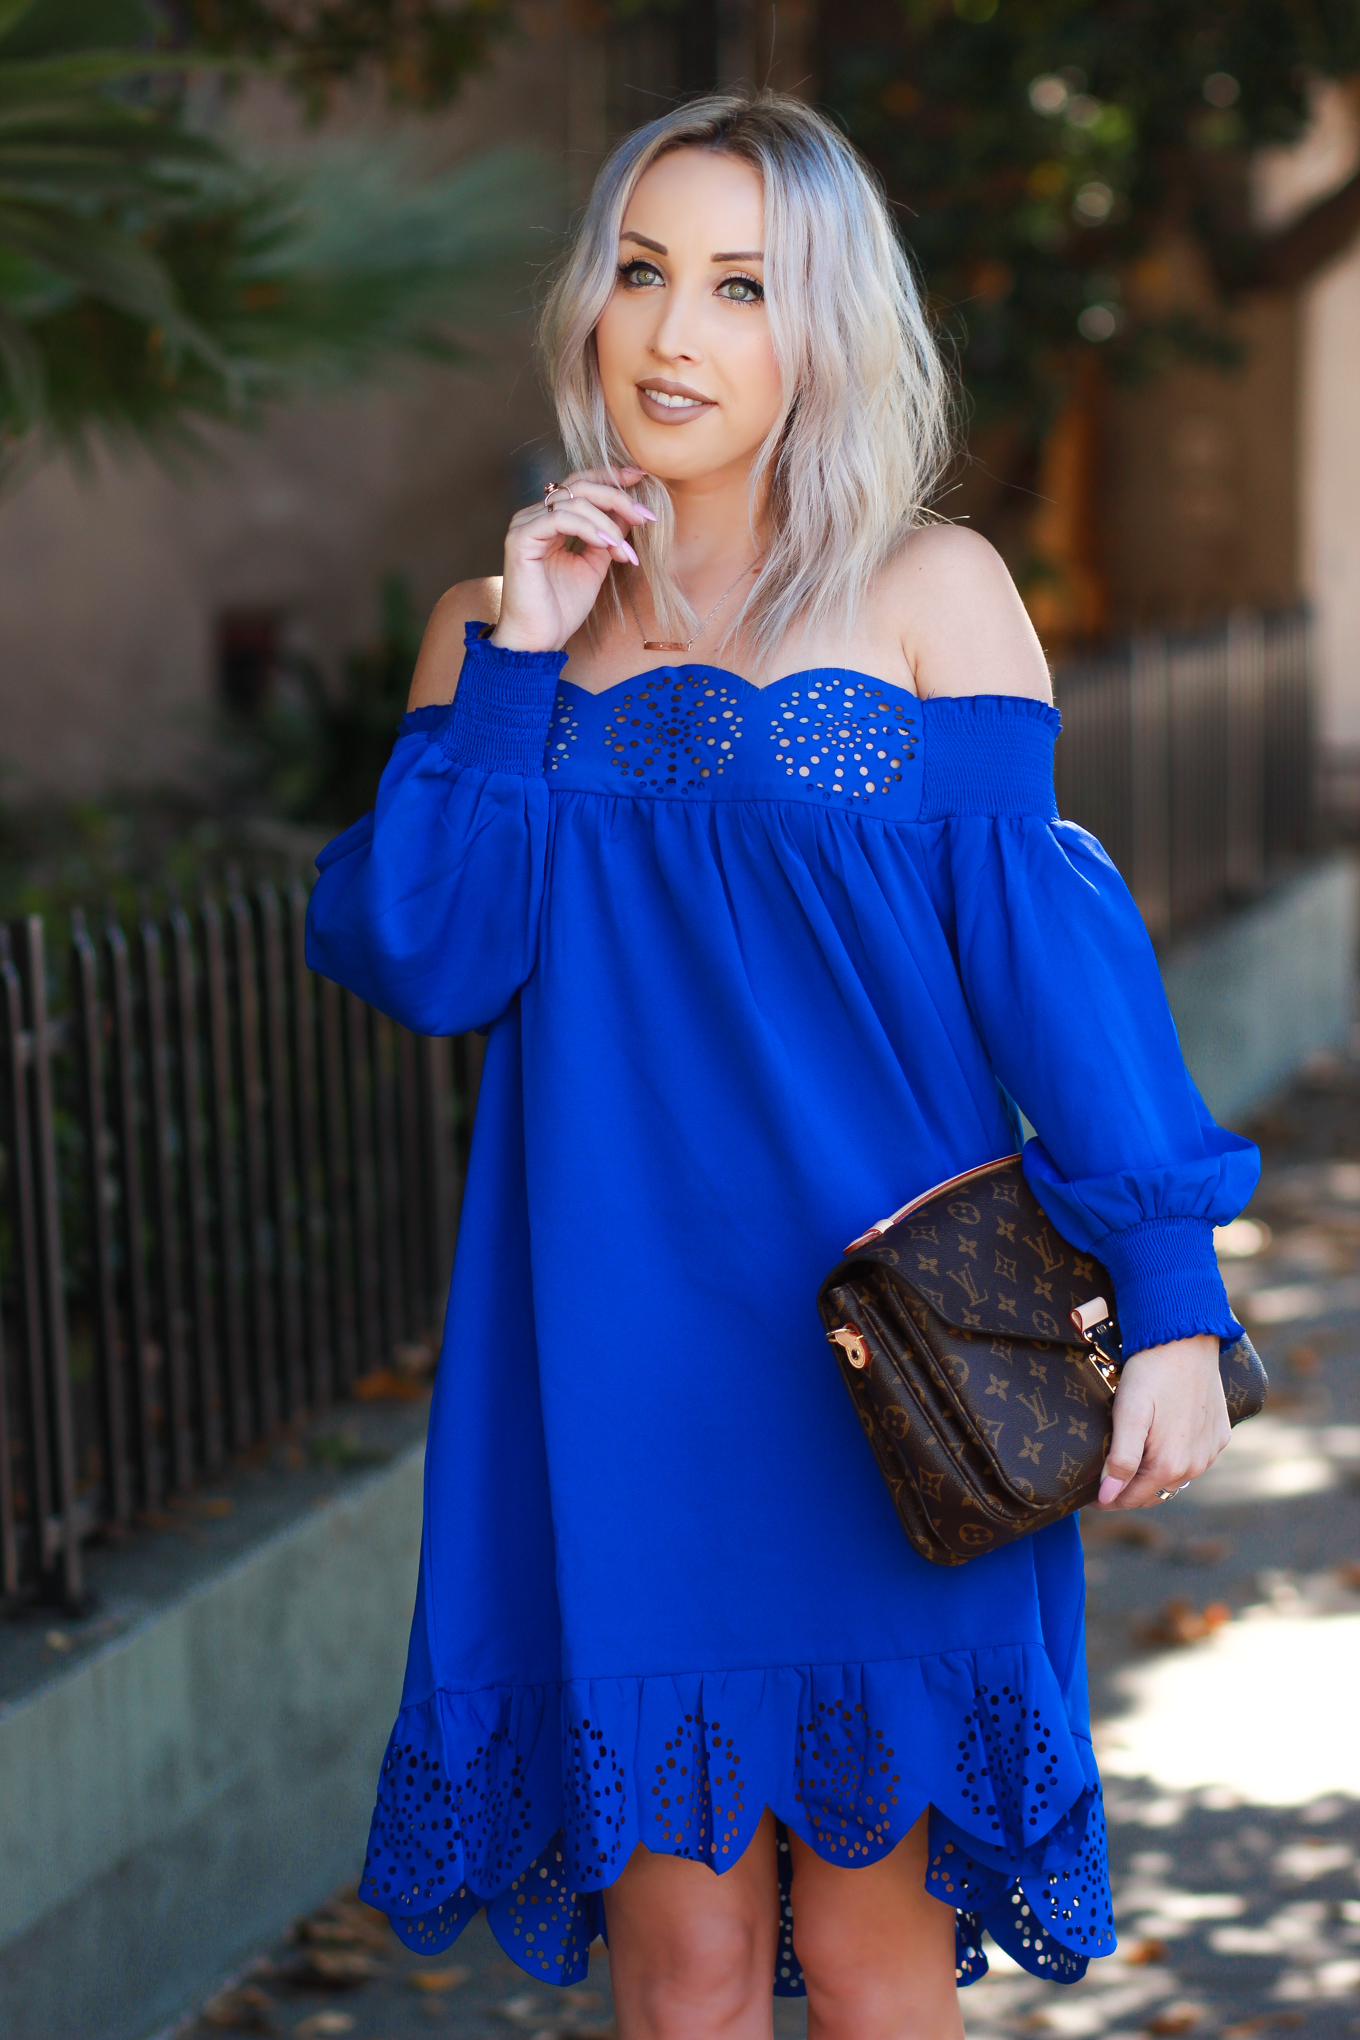 Blondie in the City | Bright Blue Scalloped Off The Shoulder Dress | Louis Vuitton Pochette Metis